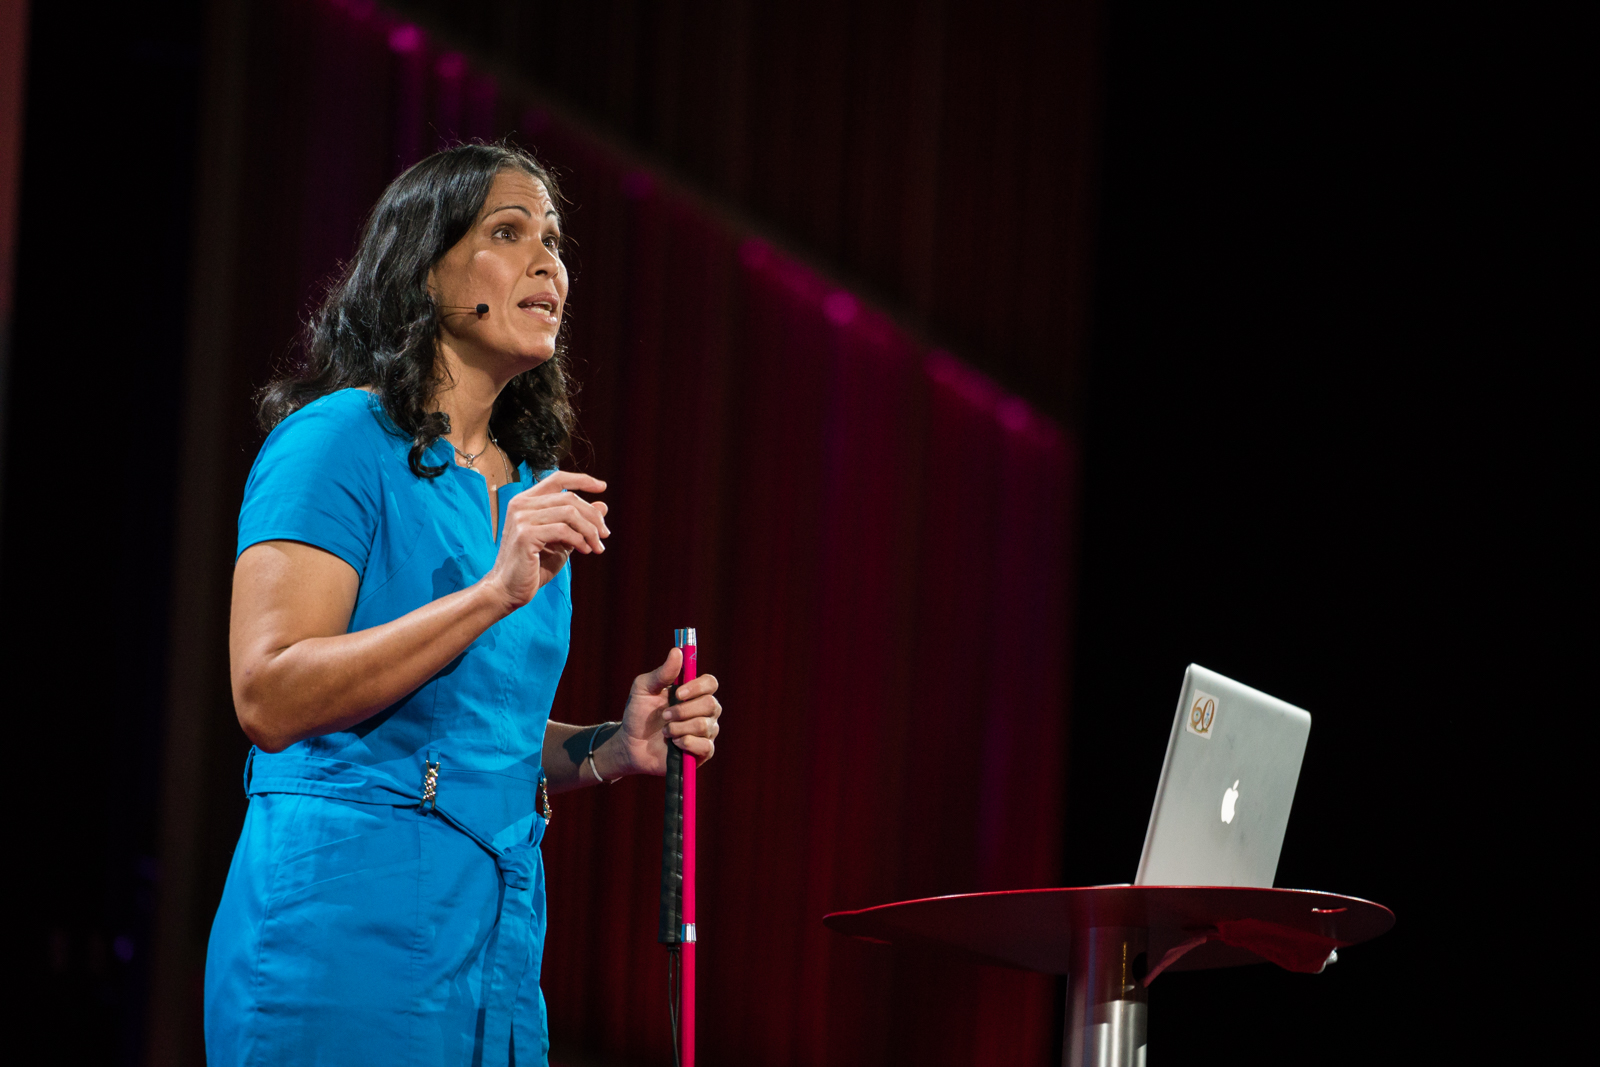 Wanda Diaz Merced speaks at TED2016 - Dream, February 15-19, 2016, Vancouver Convention Center, Vancouver, Canada. Photo: Bret Hartman / TED